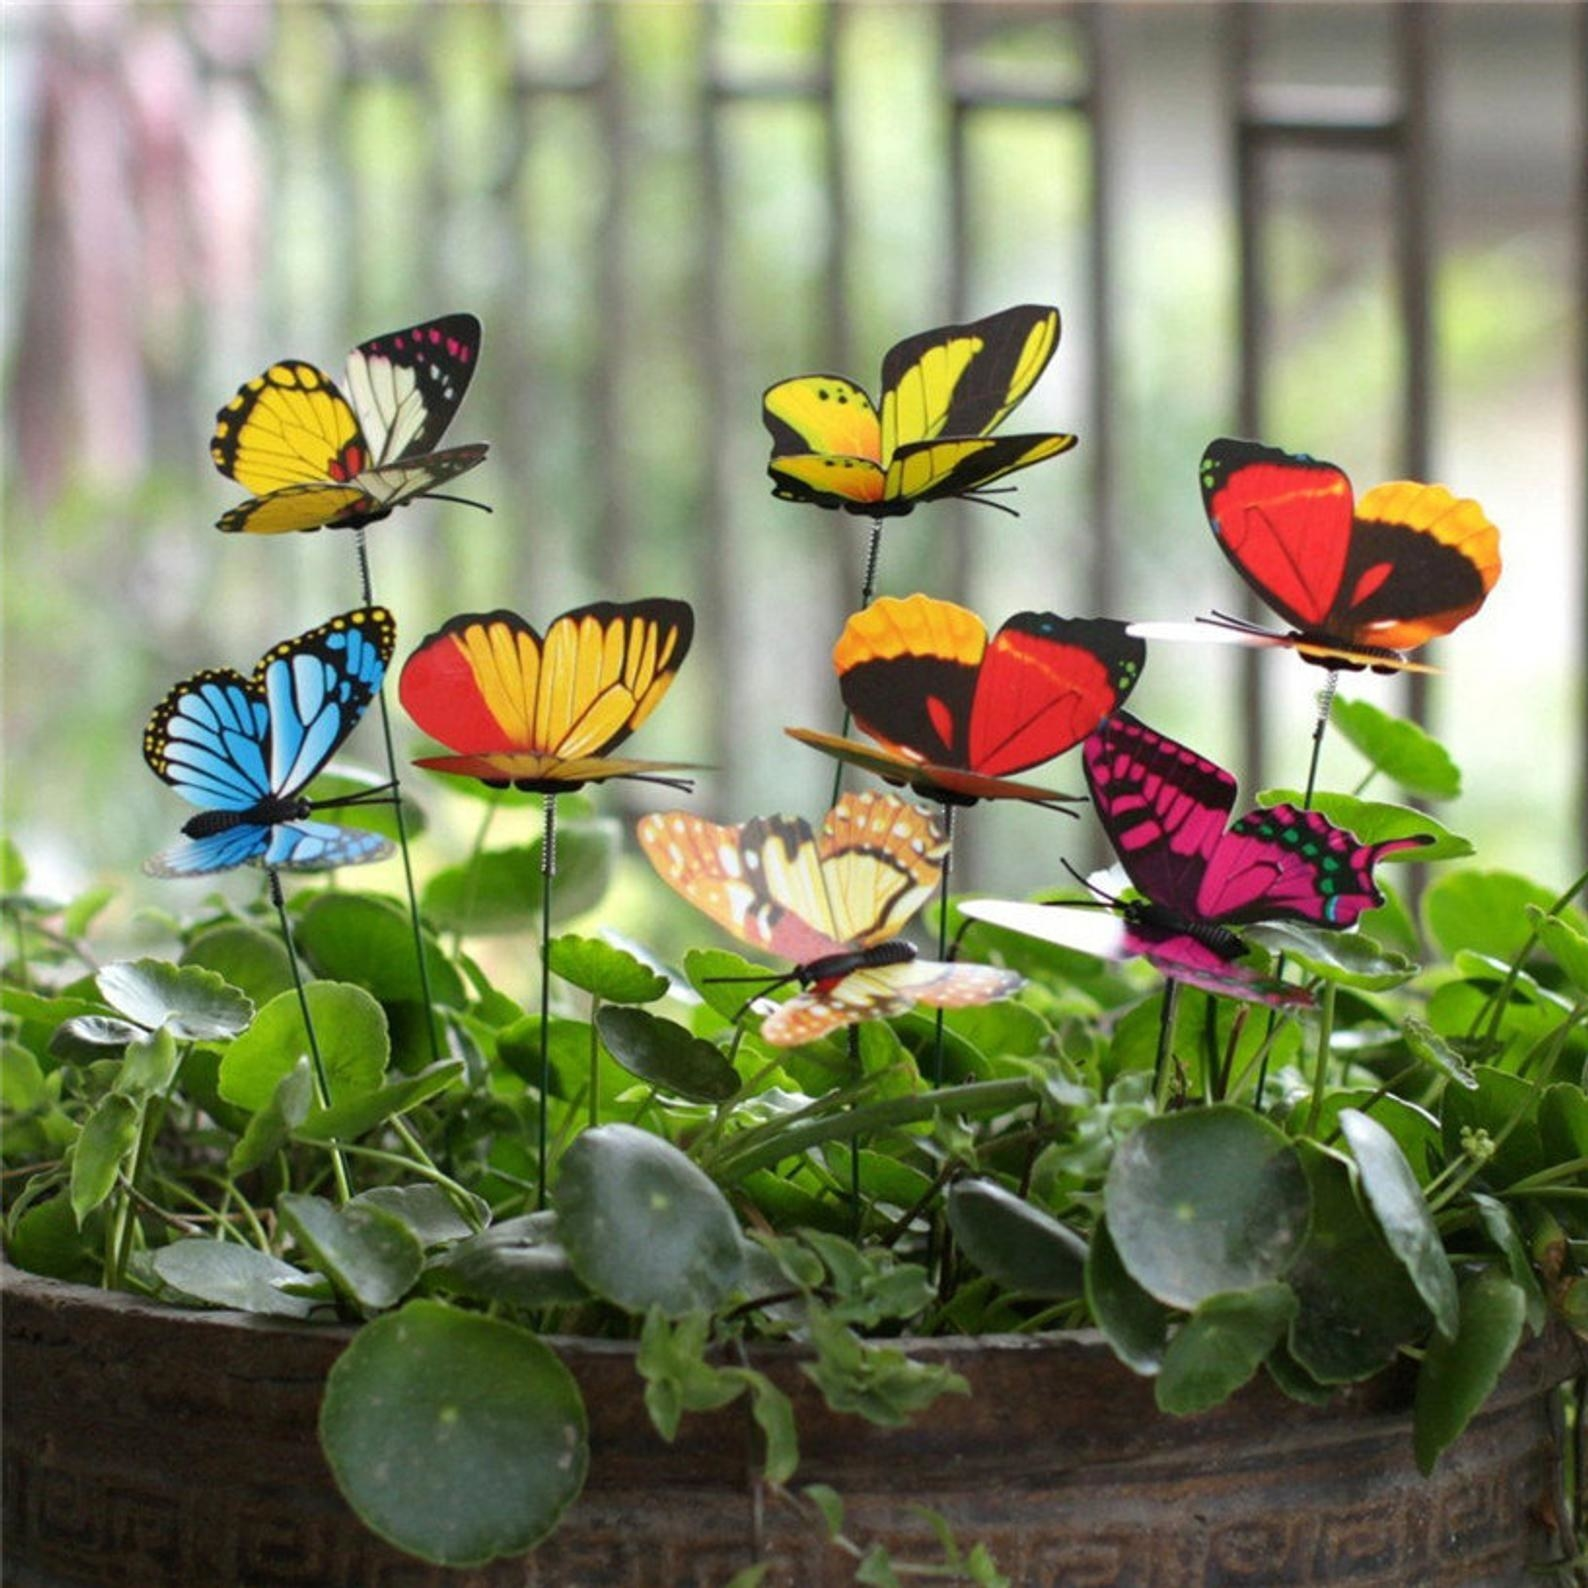 Eight colorful fake butterflies staked into a potted plant